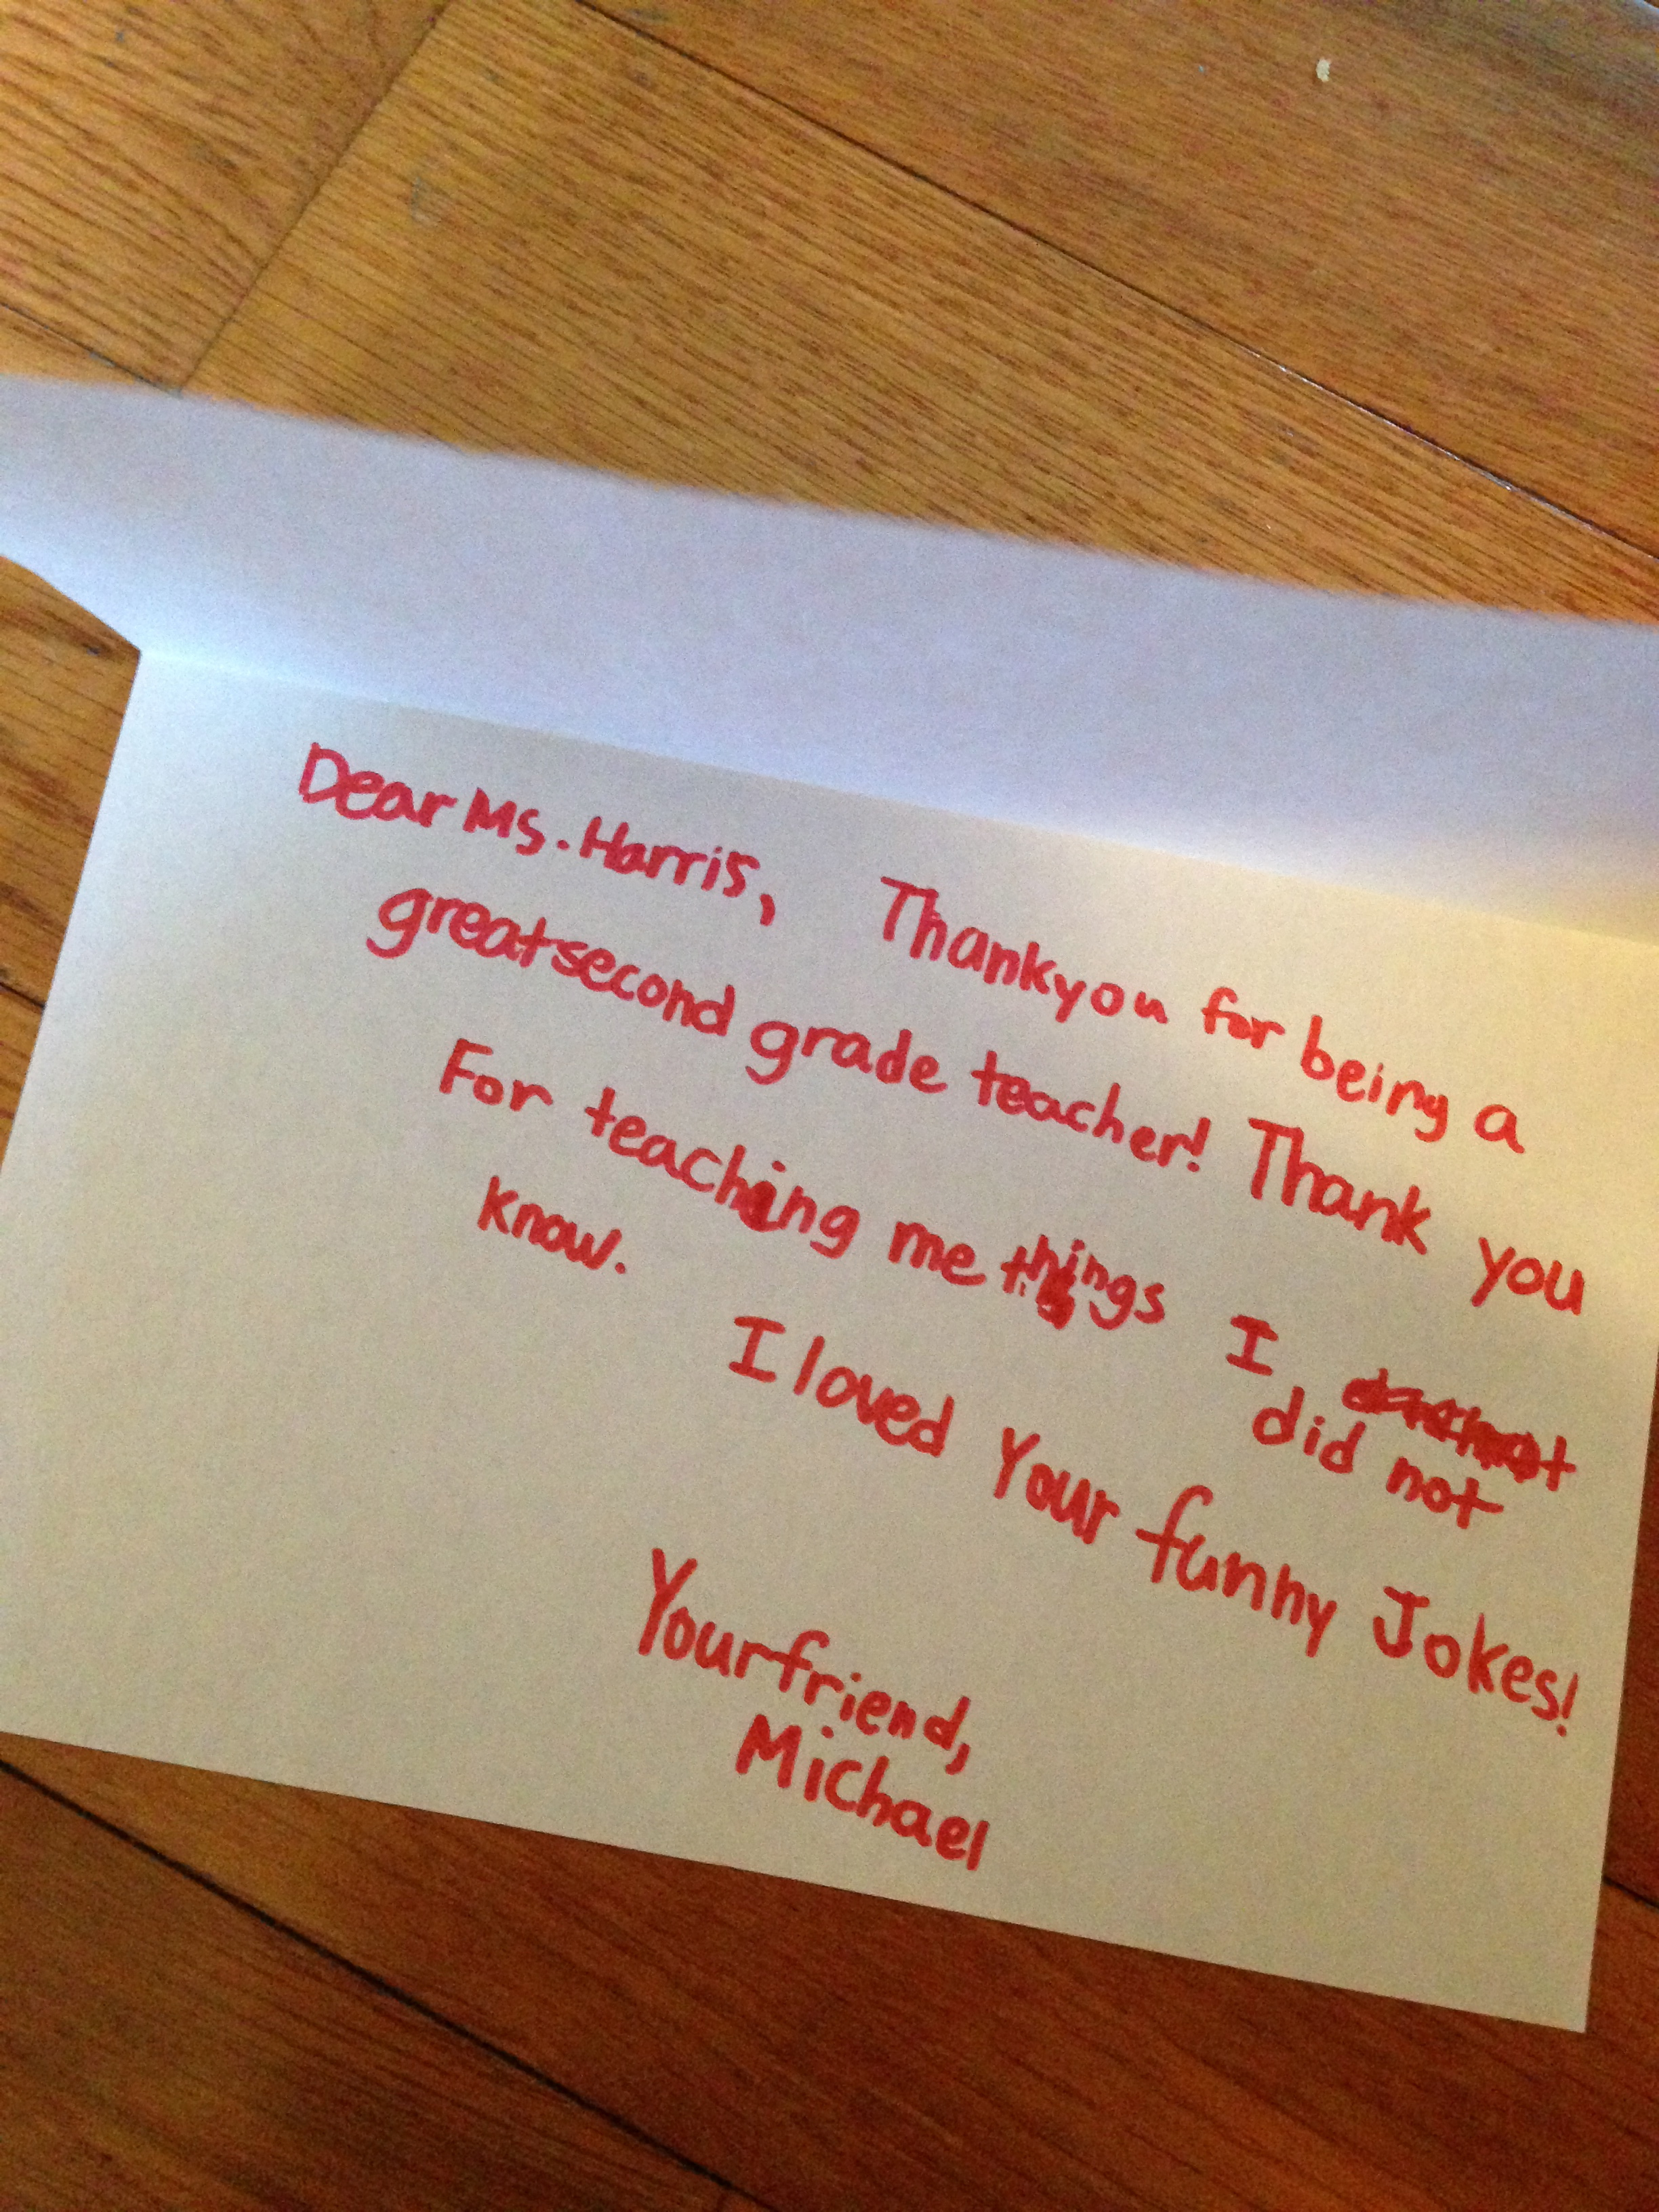 Sample Thank You Letters For Teacher Gifts Cover Letter Examples – Thank You Letter to Teacher